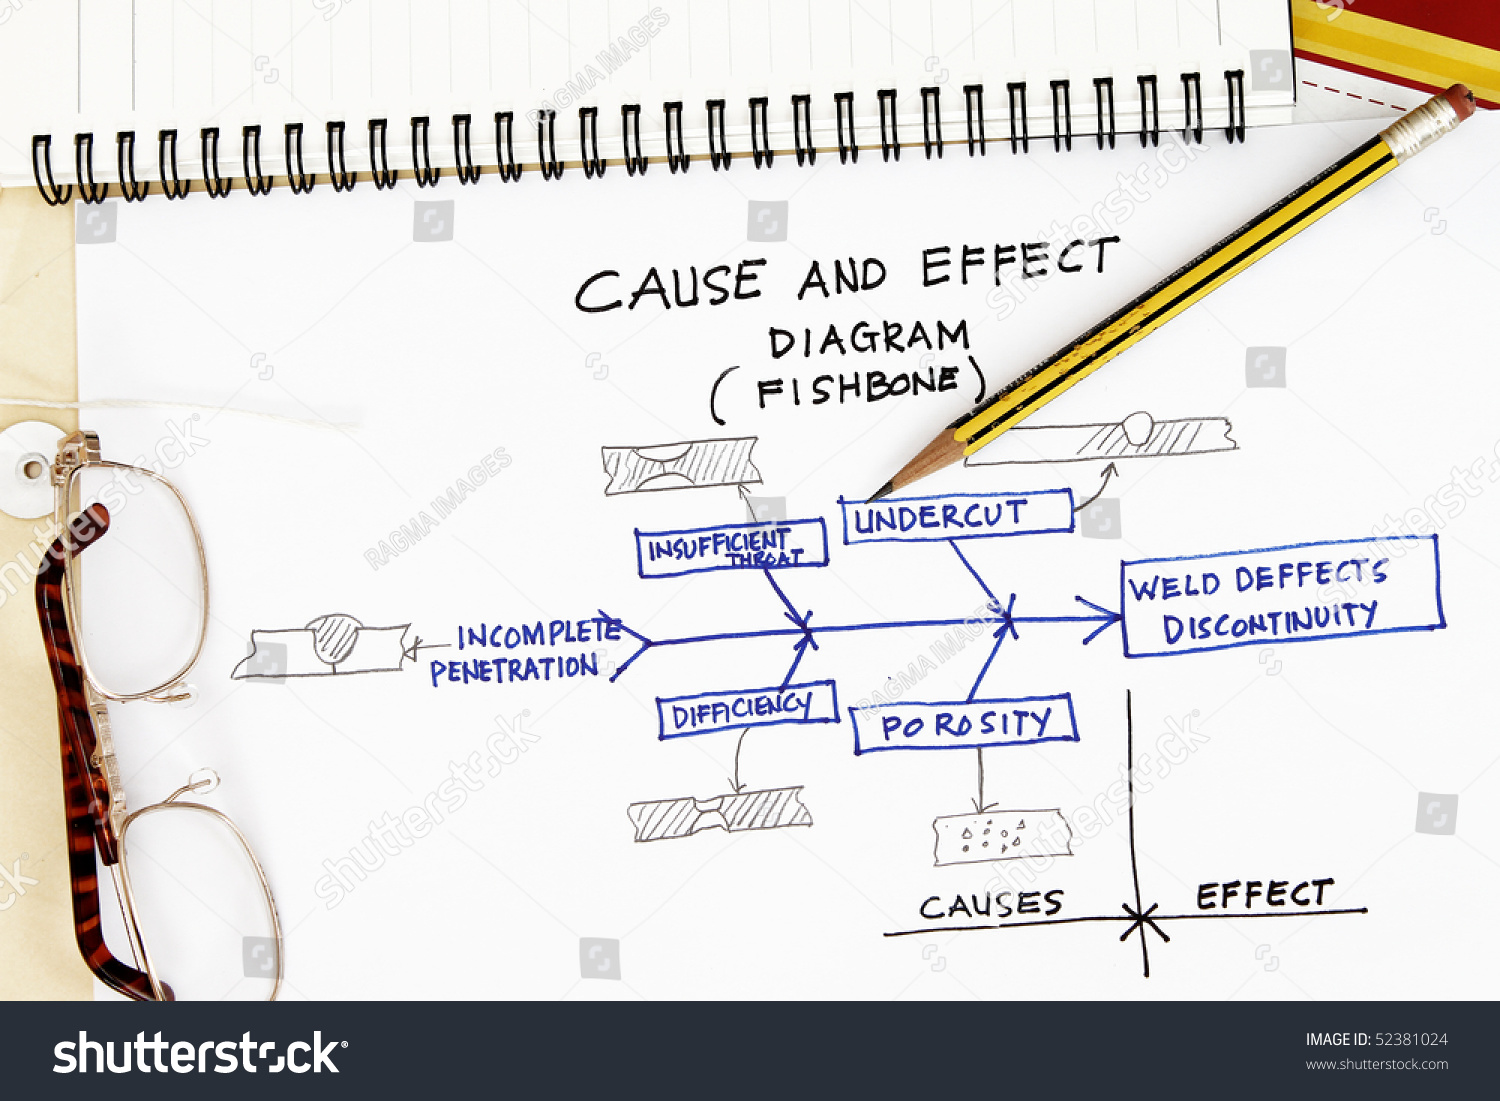 Cause and effect diagram fishbone of welding deffects.